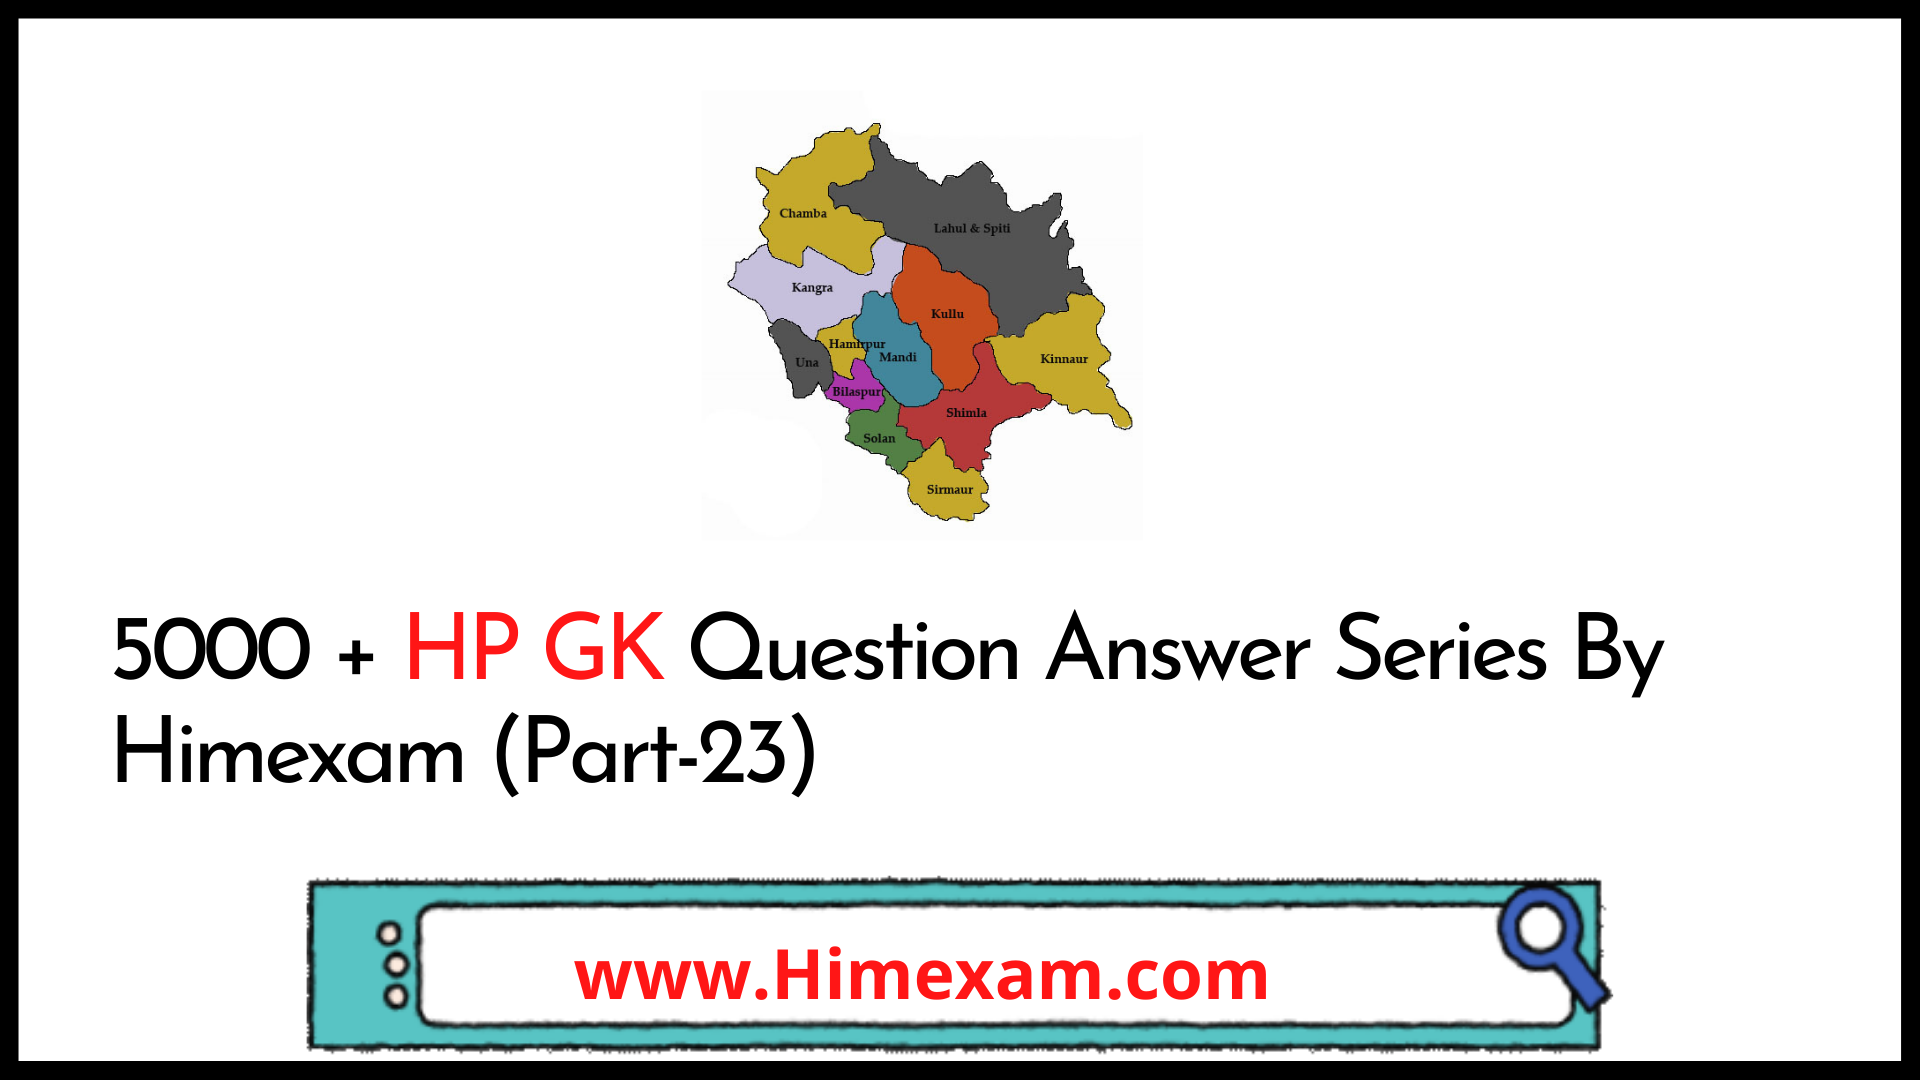 5000 + HP GK Question Answer Series By Himexam (Part-23)